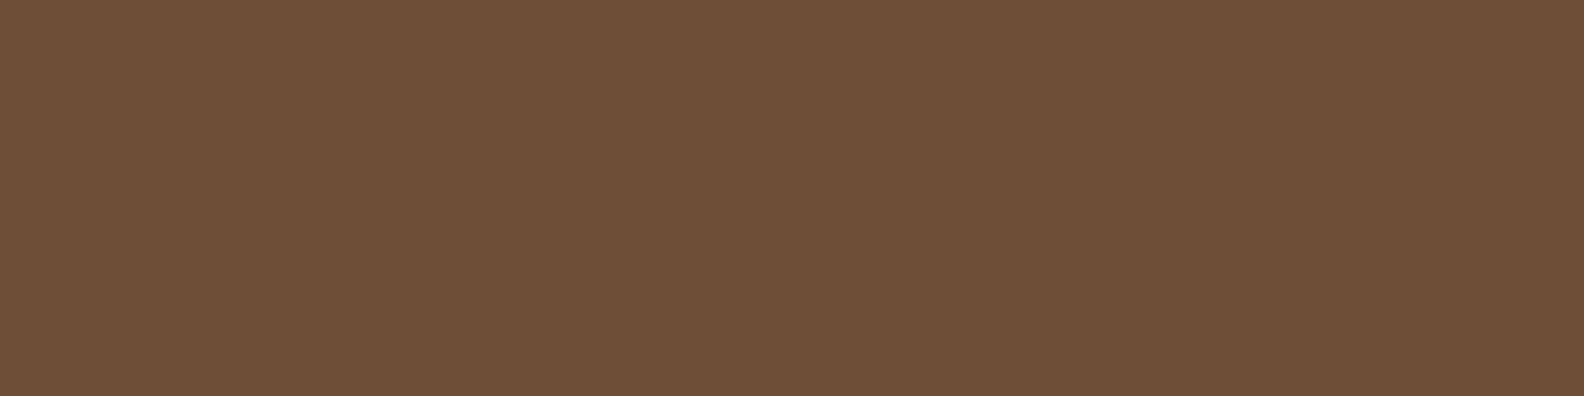 1584x396 Tuscan Brown Solid Color Background